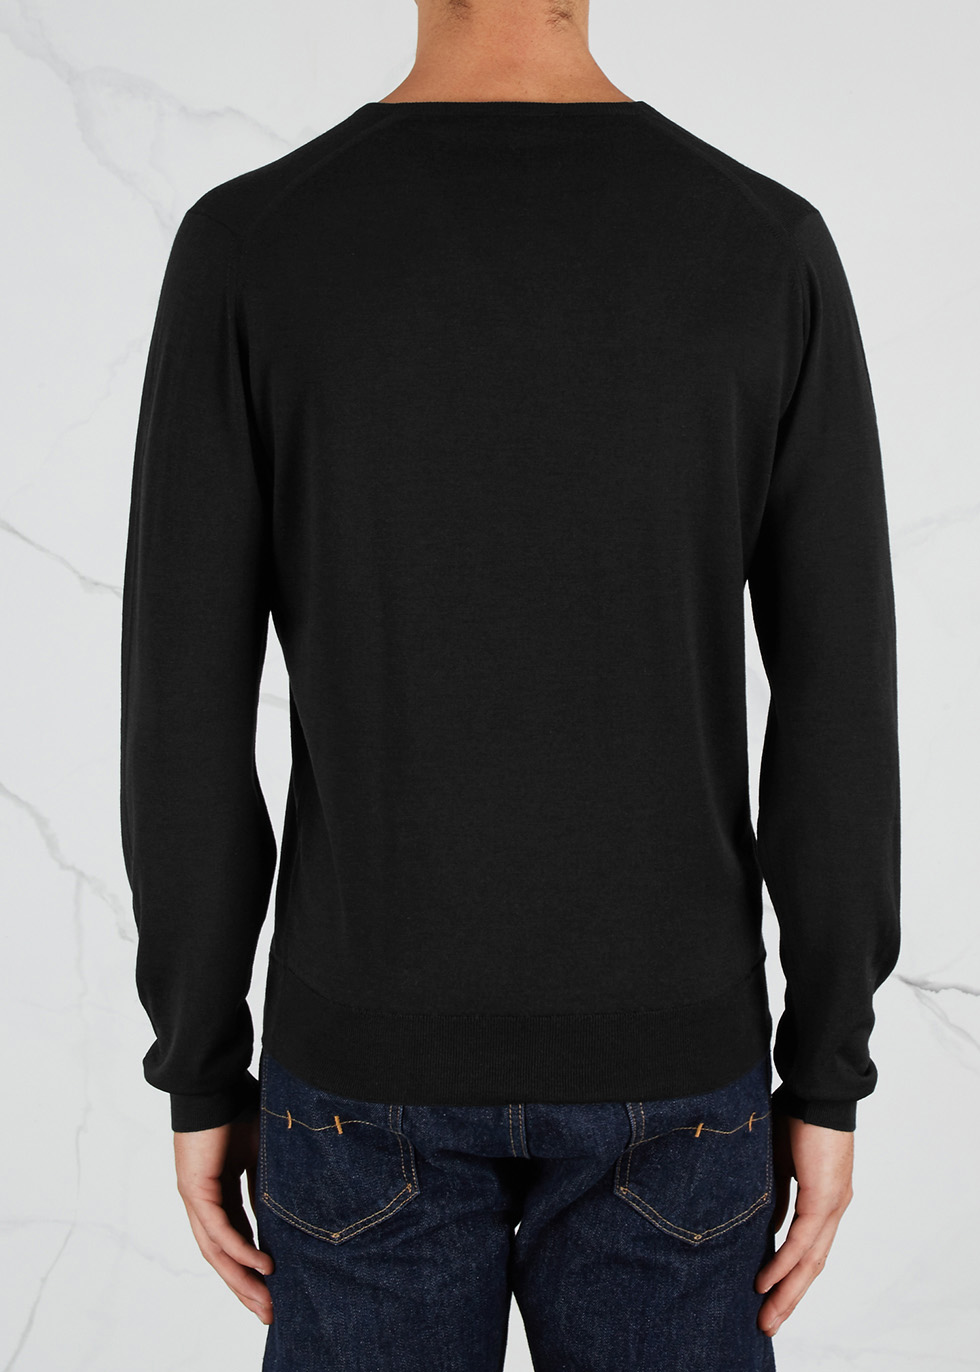 Blenheim black fine-knit wool jumper - John Smedley